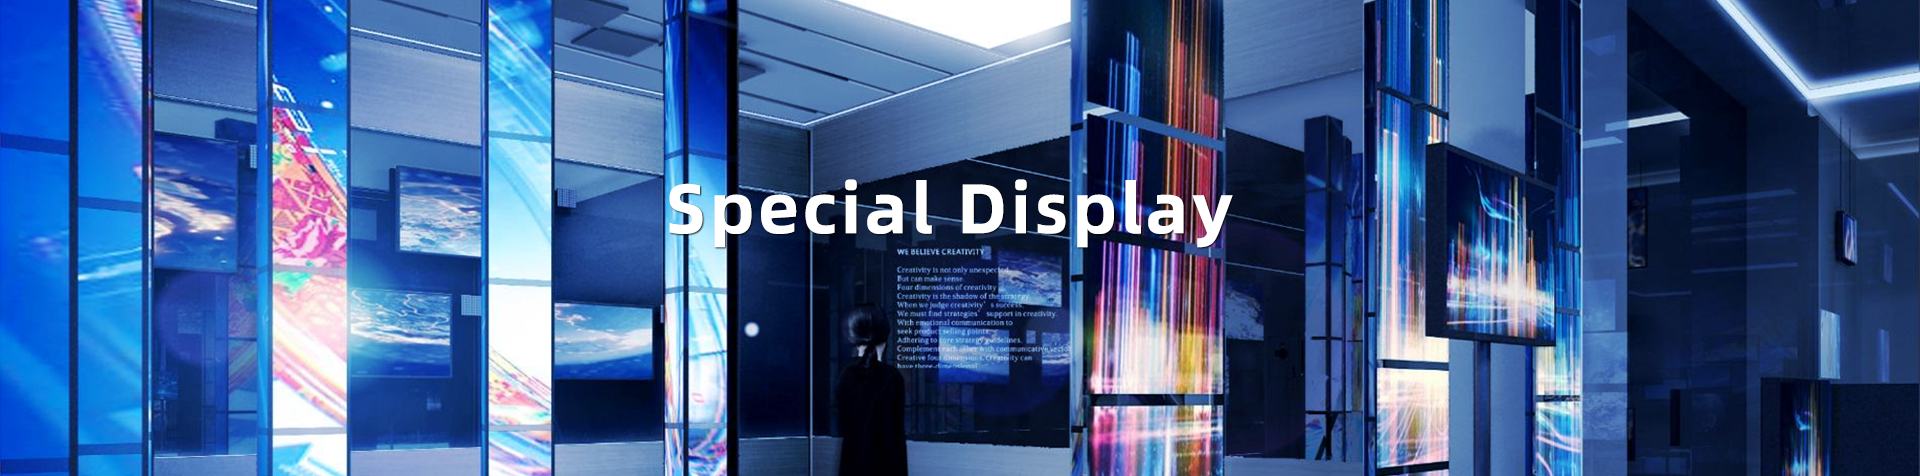 Special Display